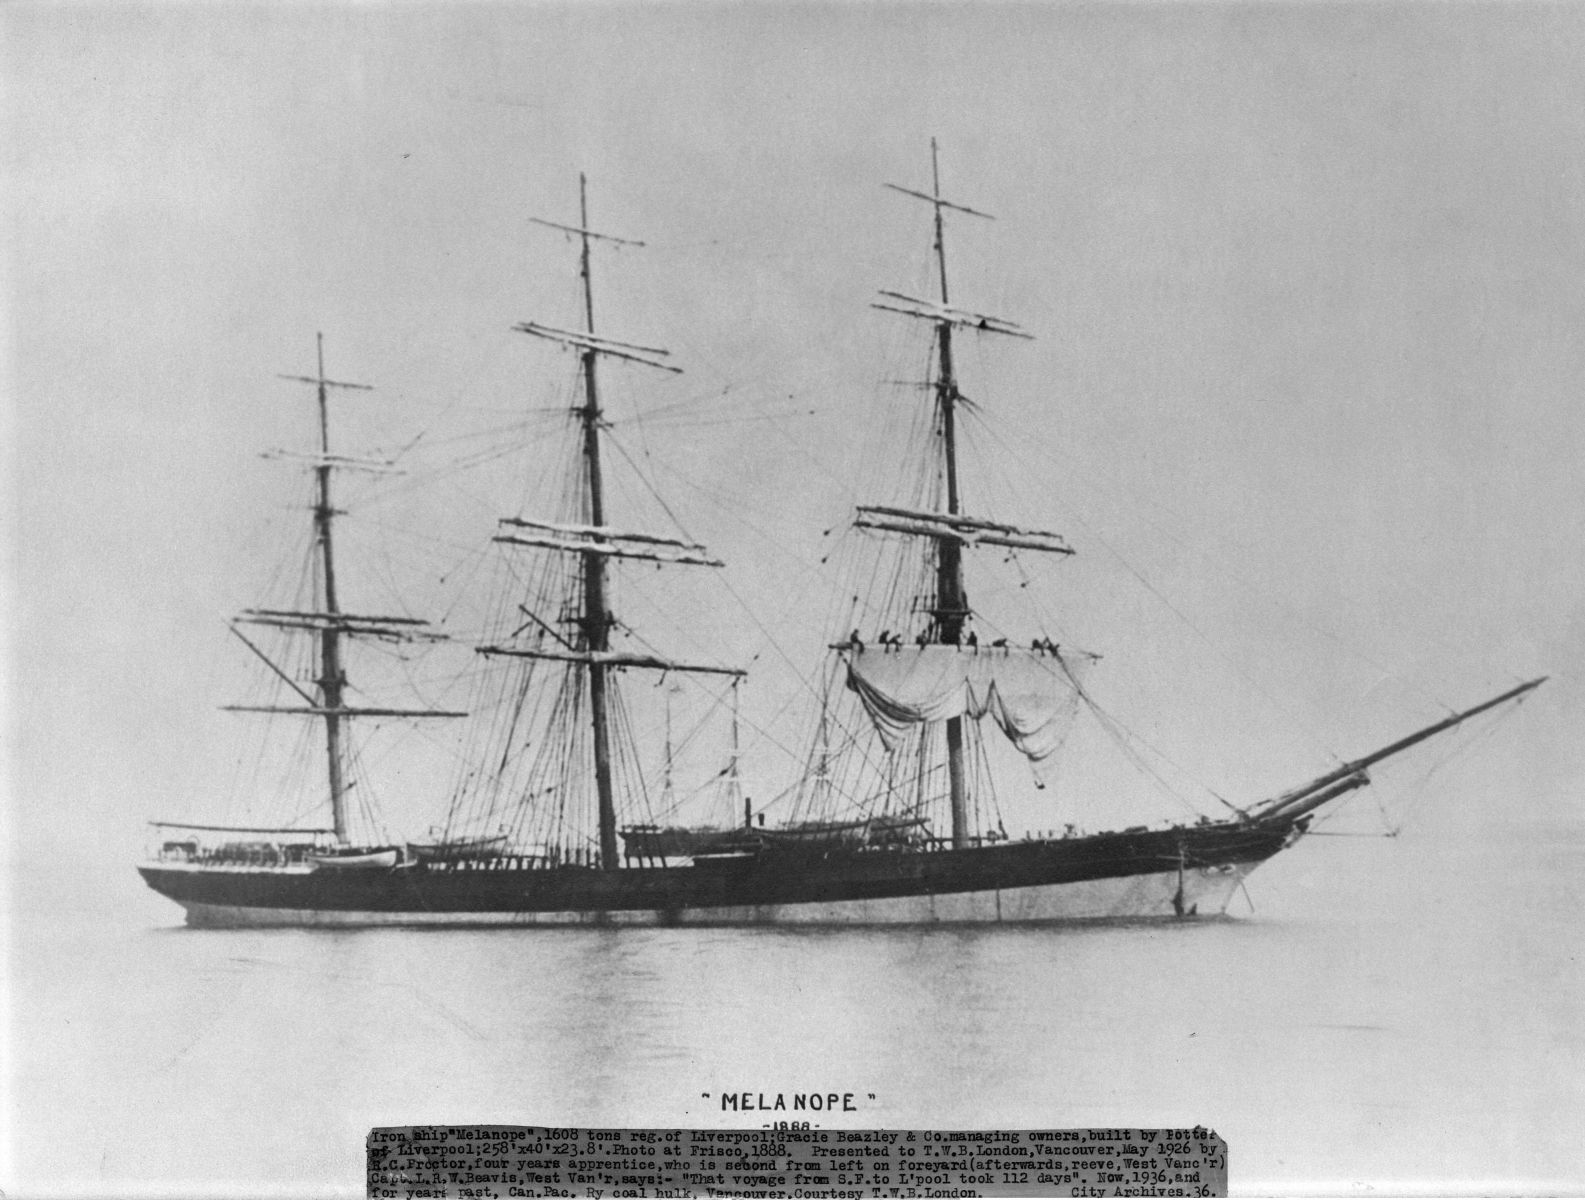 Melanope in 1888